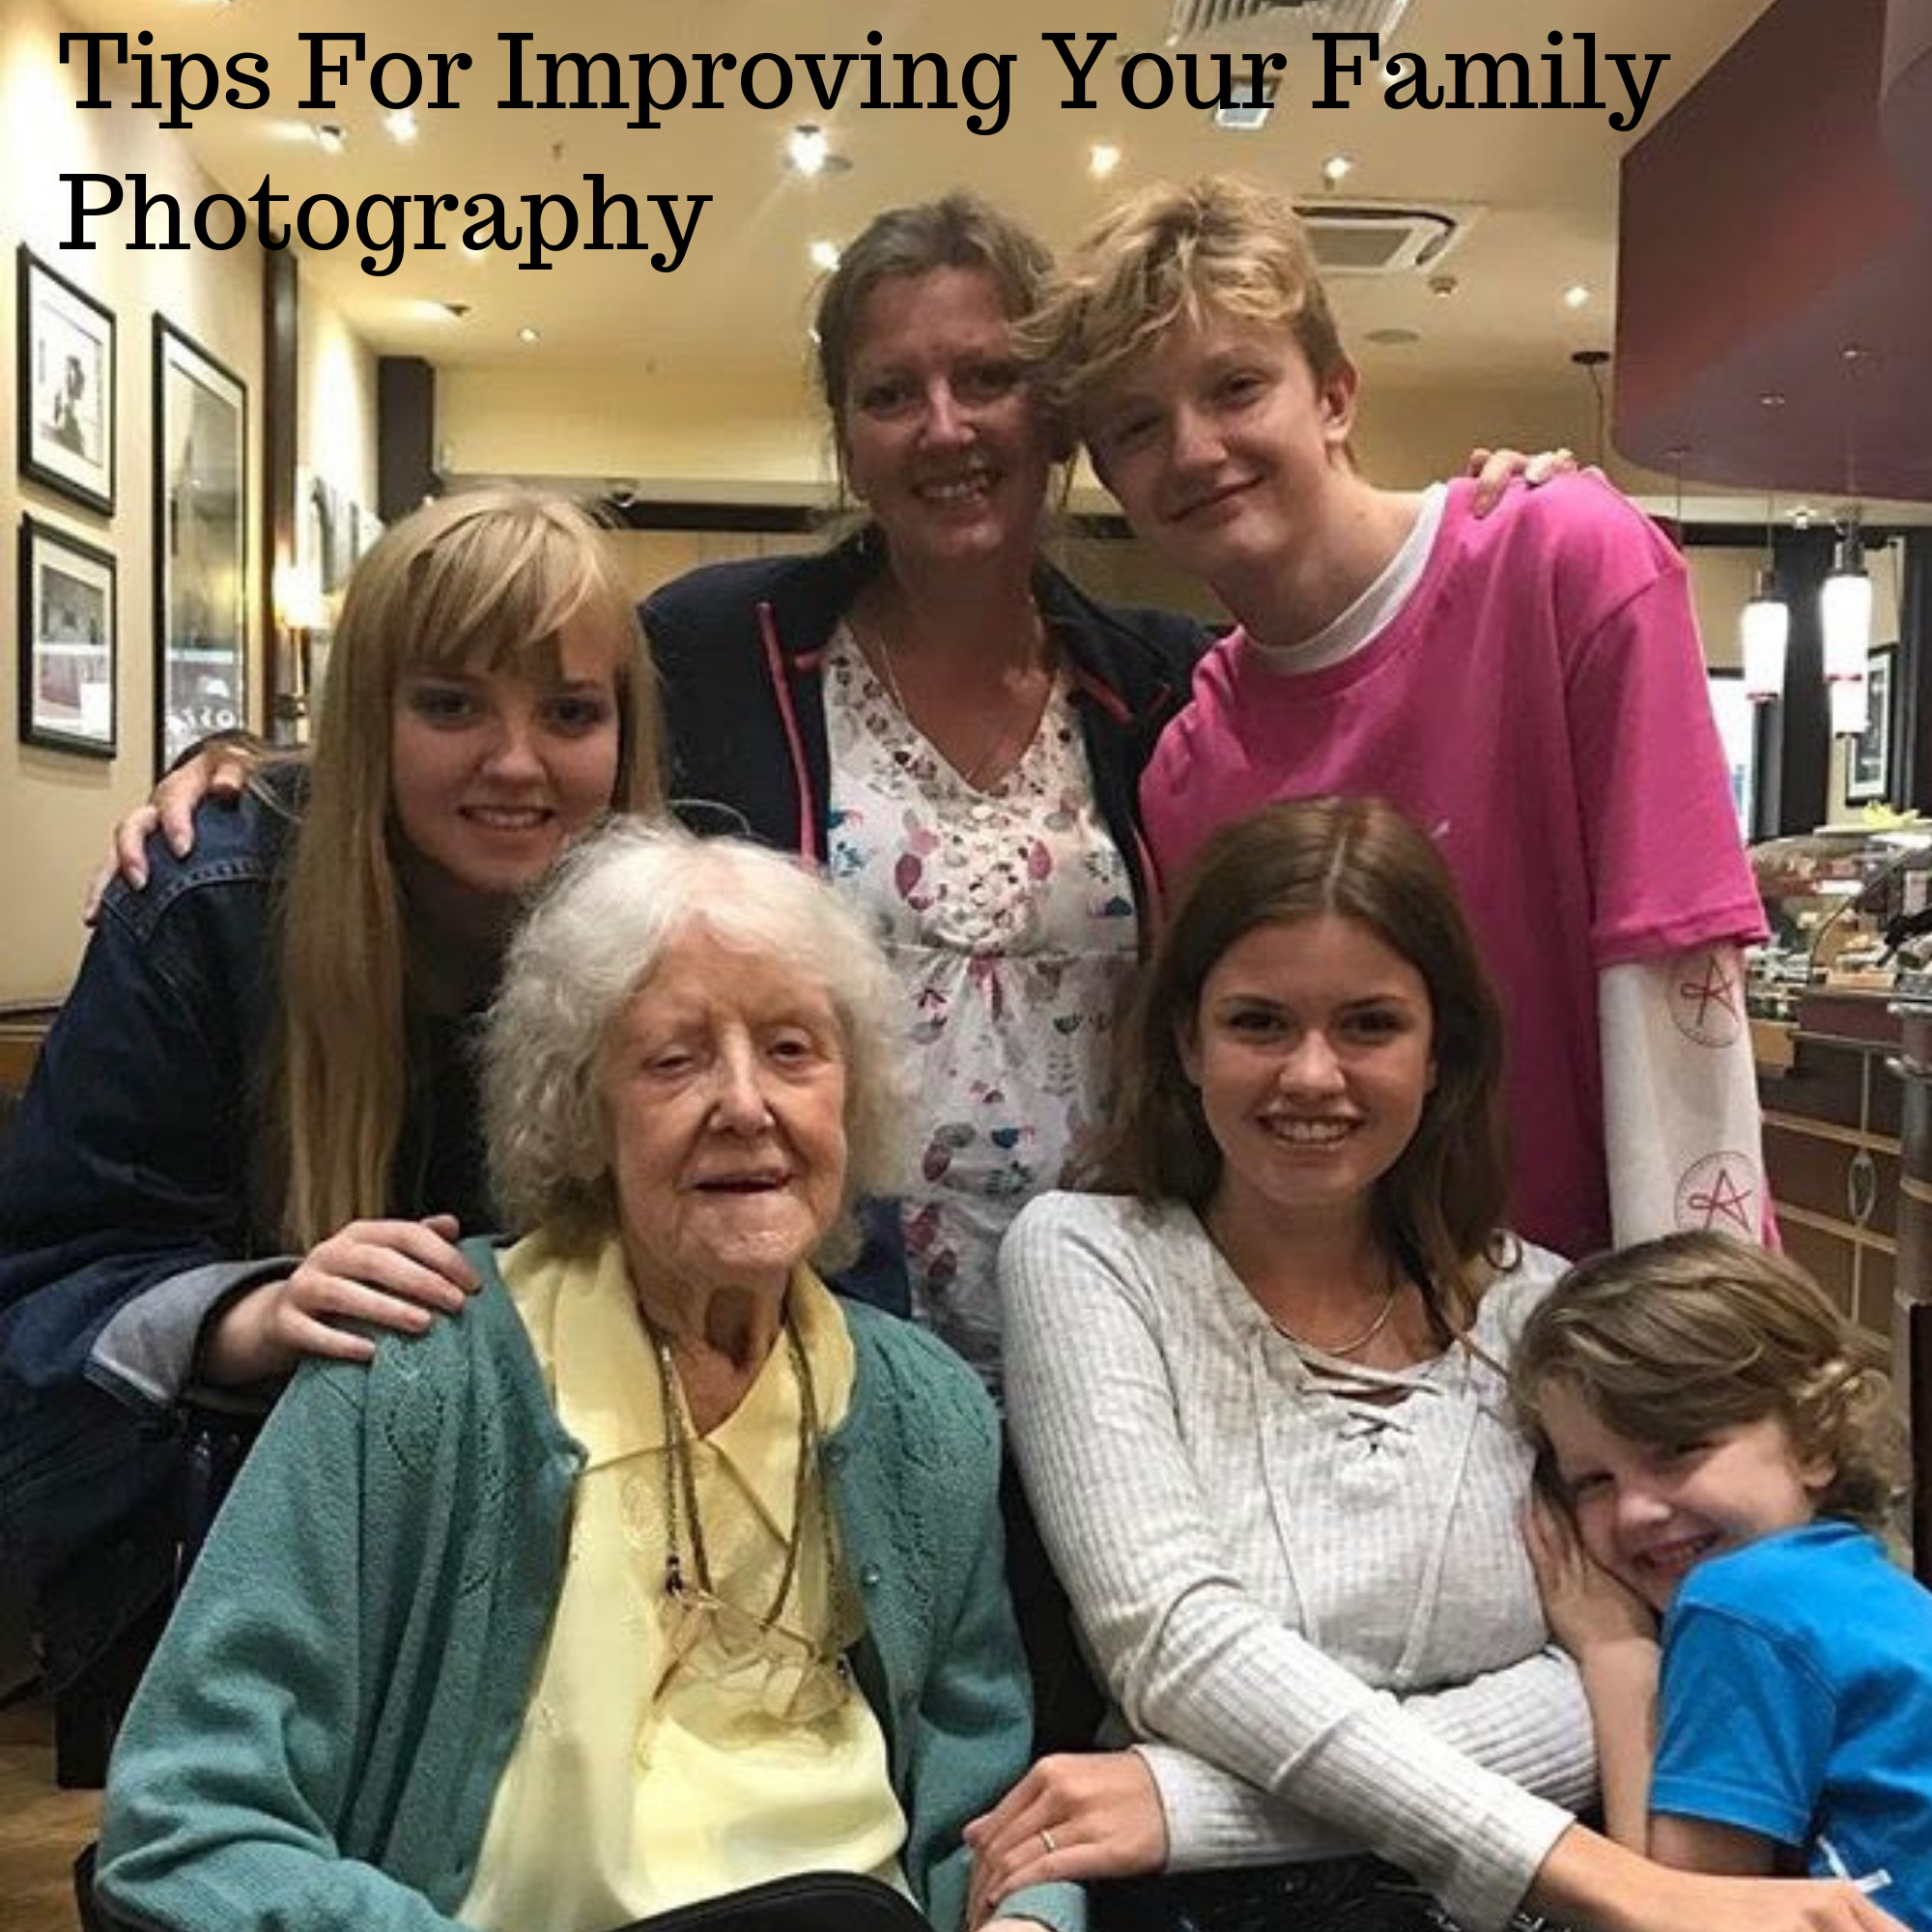 Tips For Improving Your Family Photography